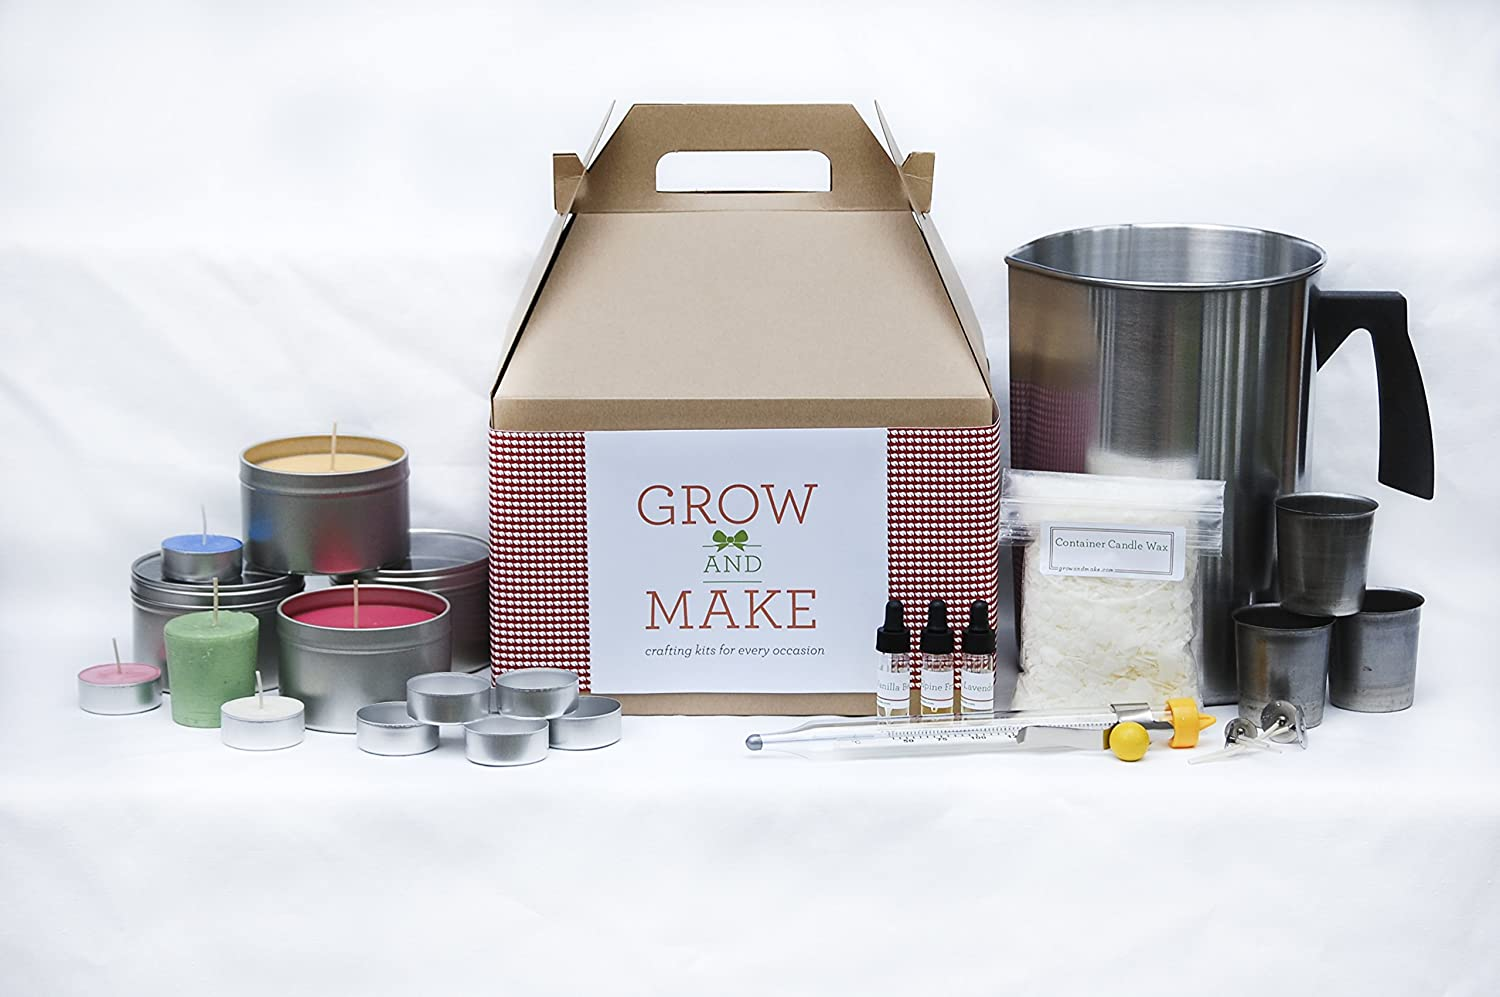 Grow and Make DIY Complete Soy Wax Candle Making Kit - Make your own candles at home! C59